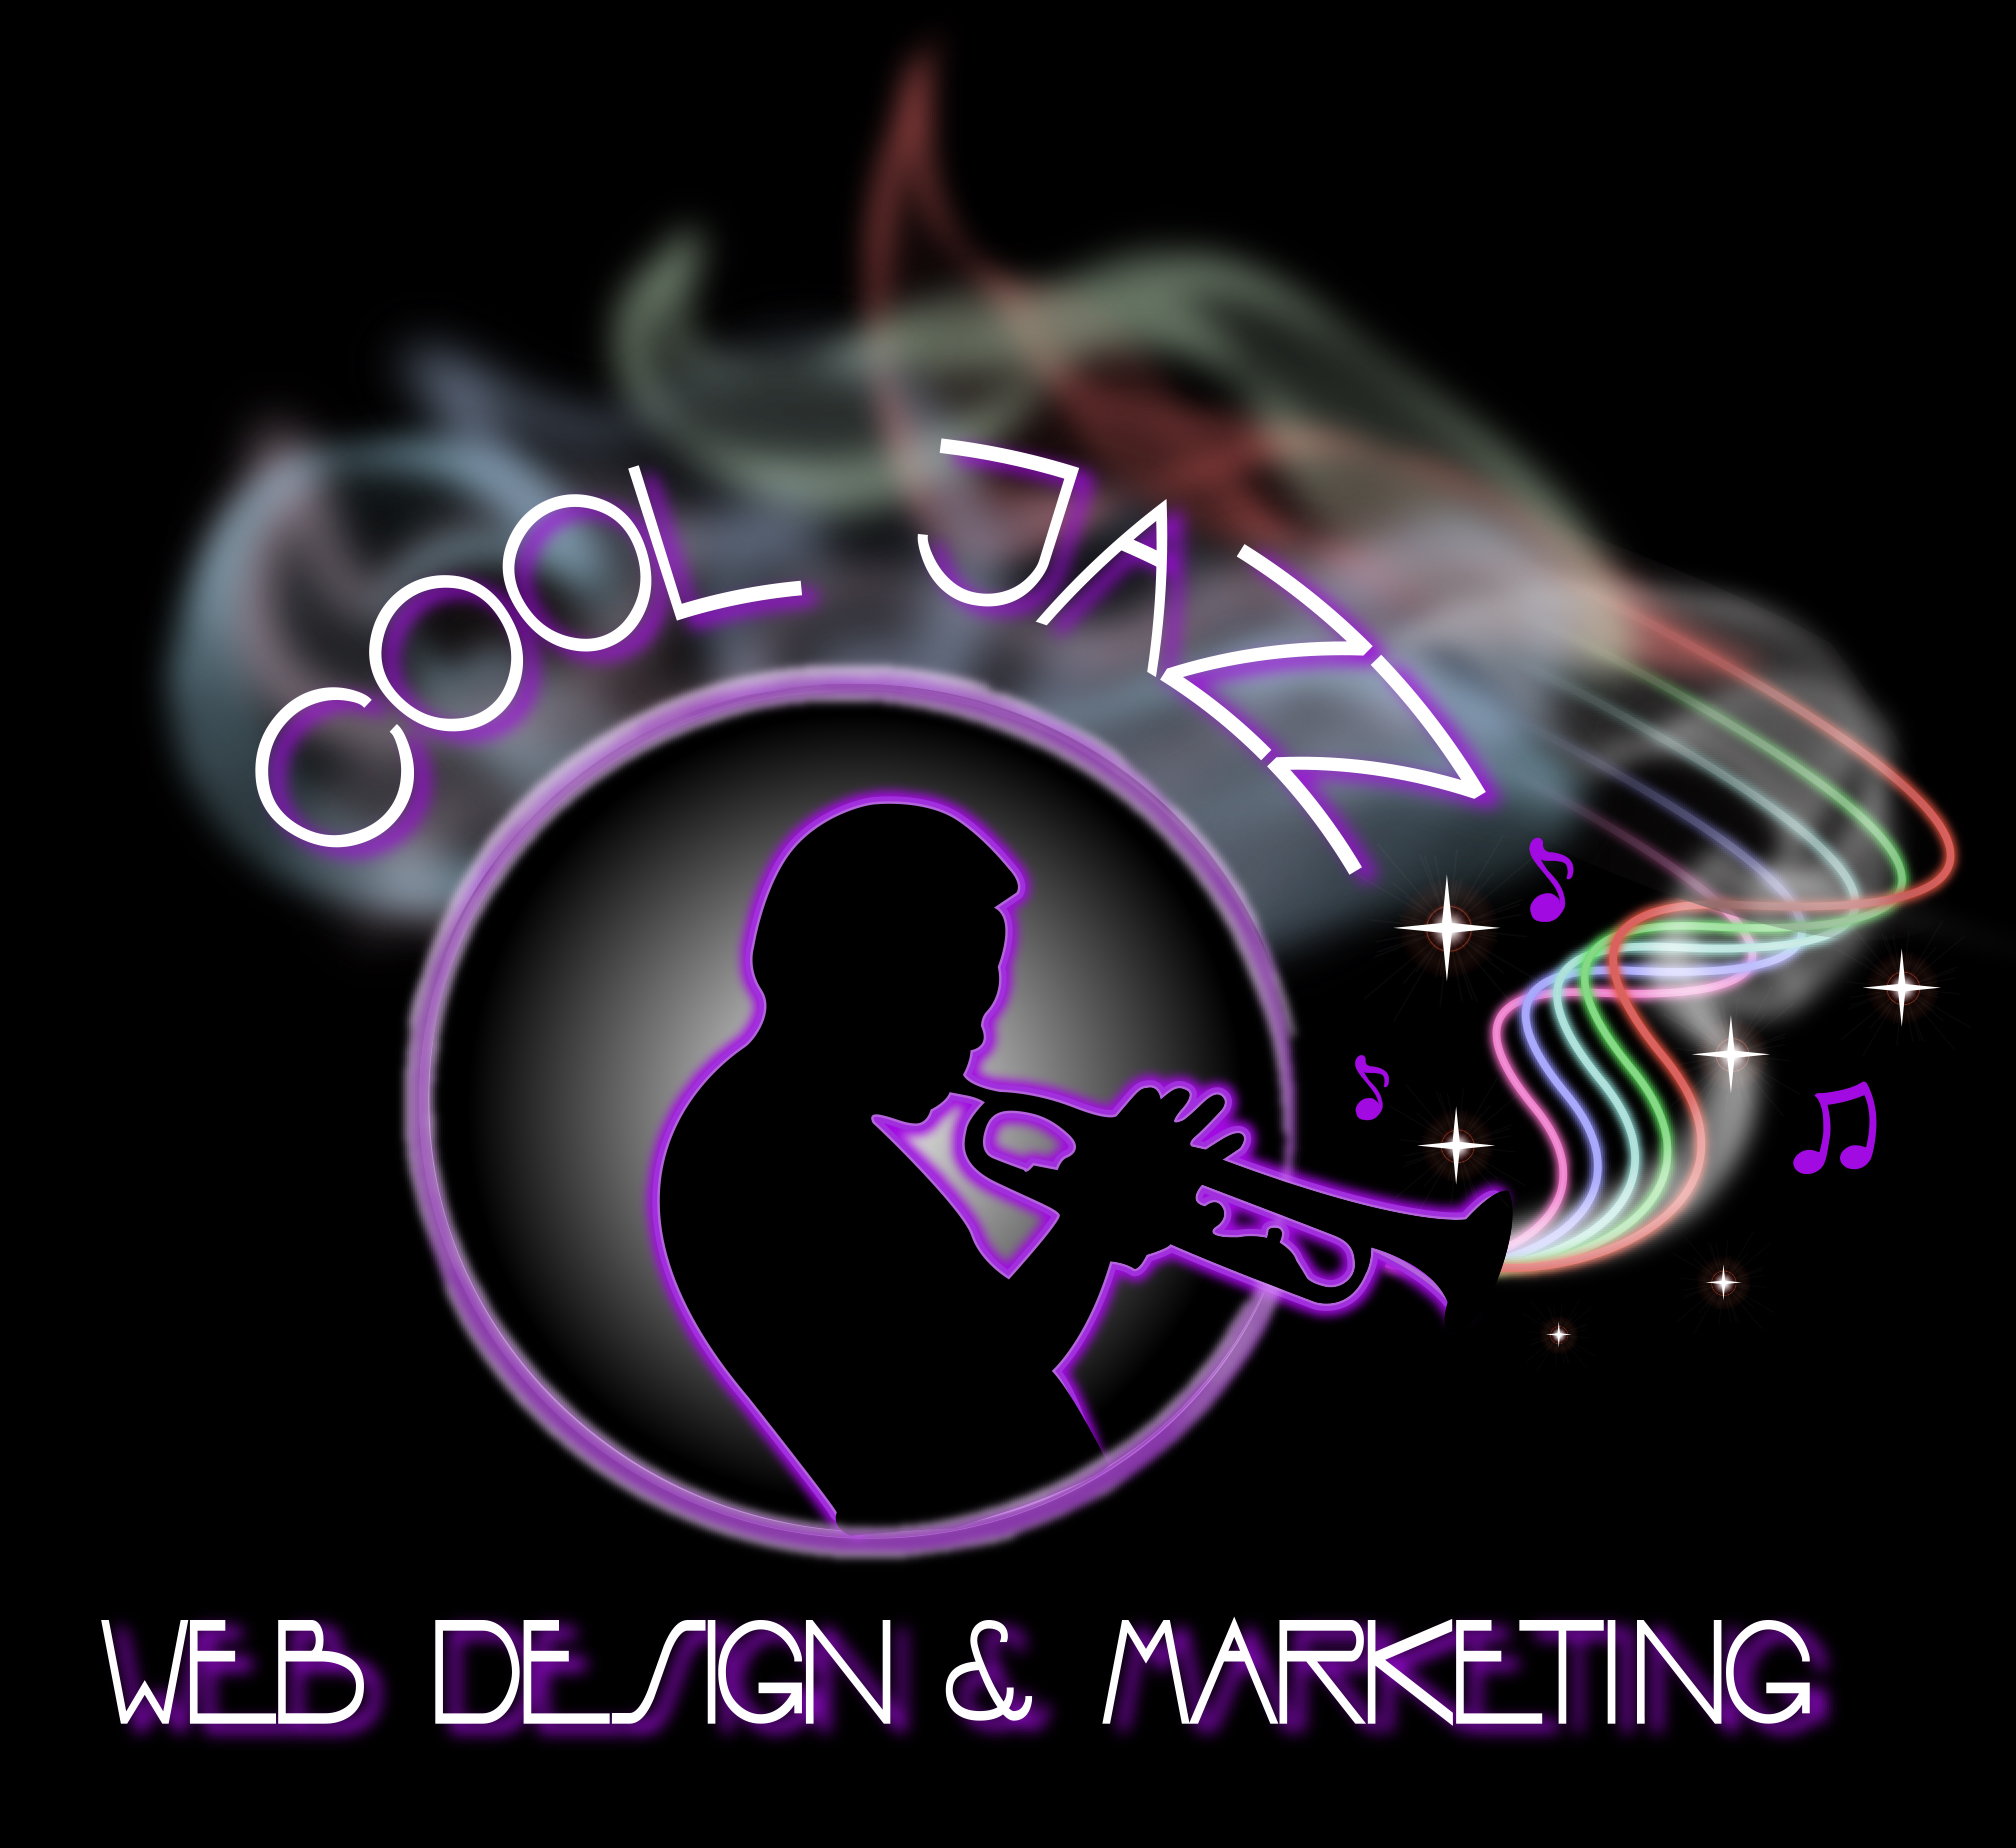 Cool Jazz Web Design Marketing Services Cool Jazz Web